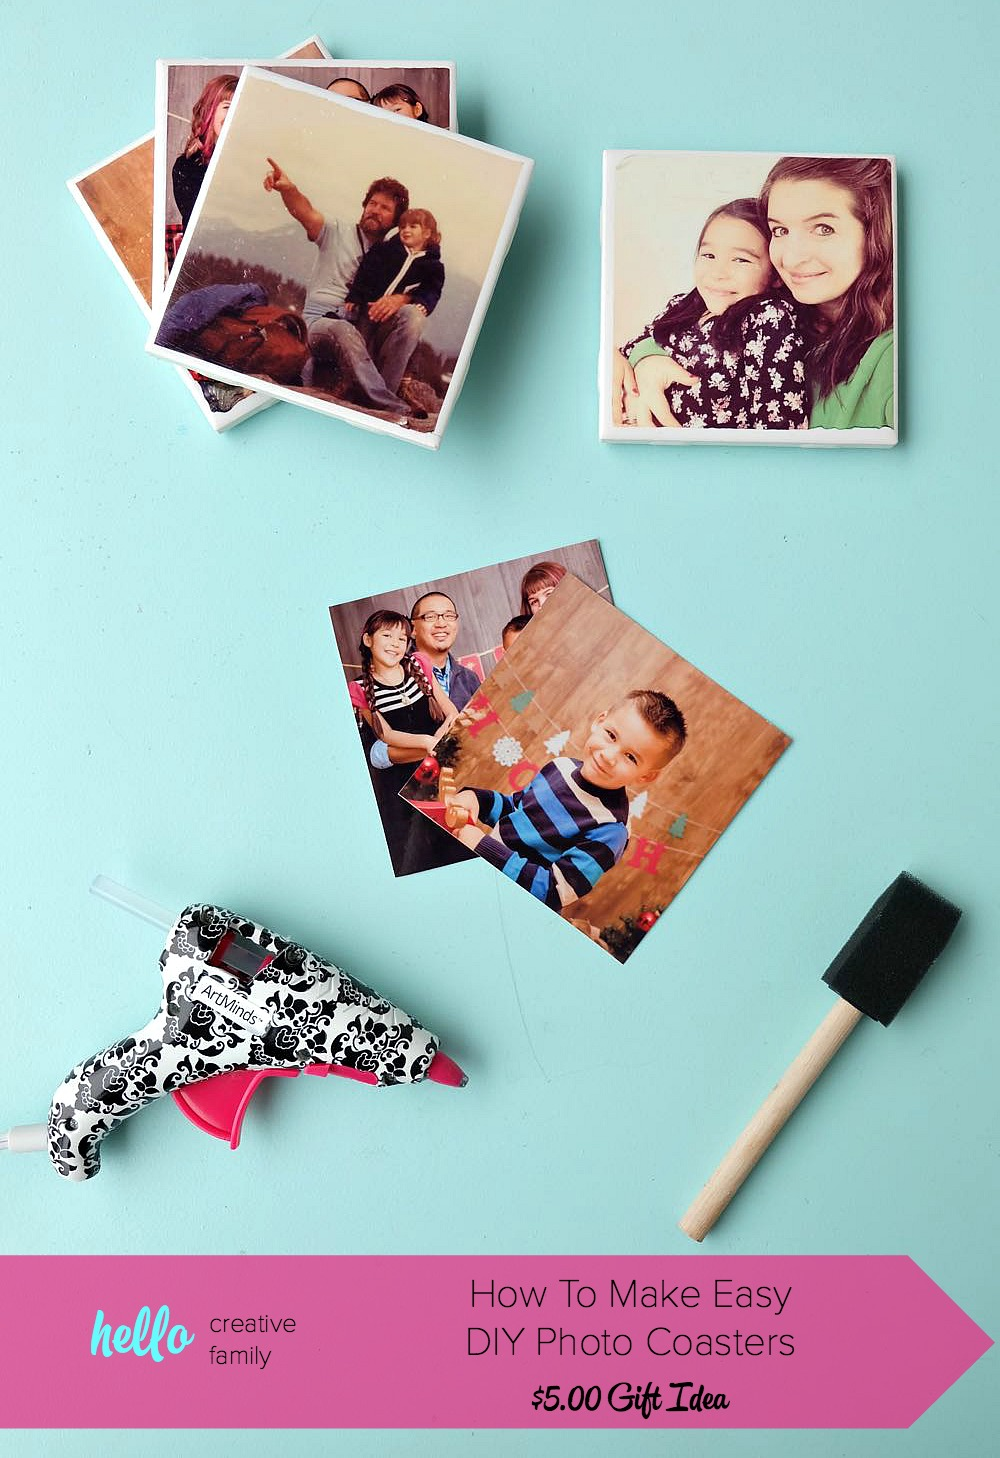 How To Make Easy Diy Photo Coasters Hello Creative Family